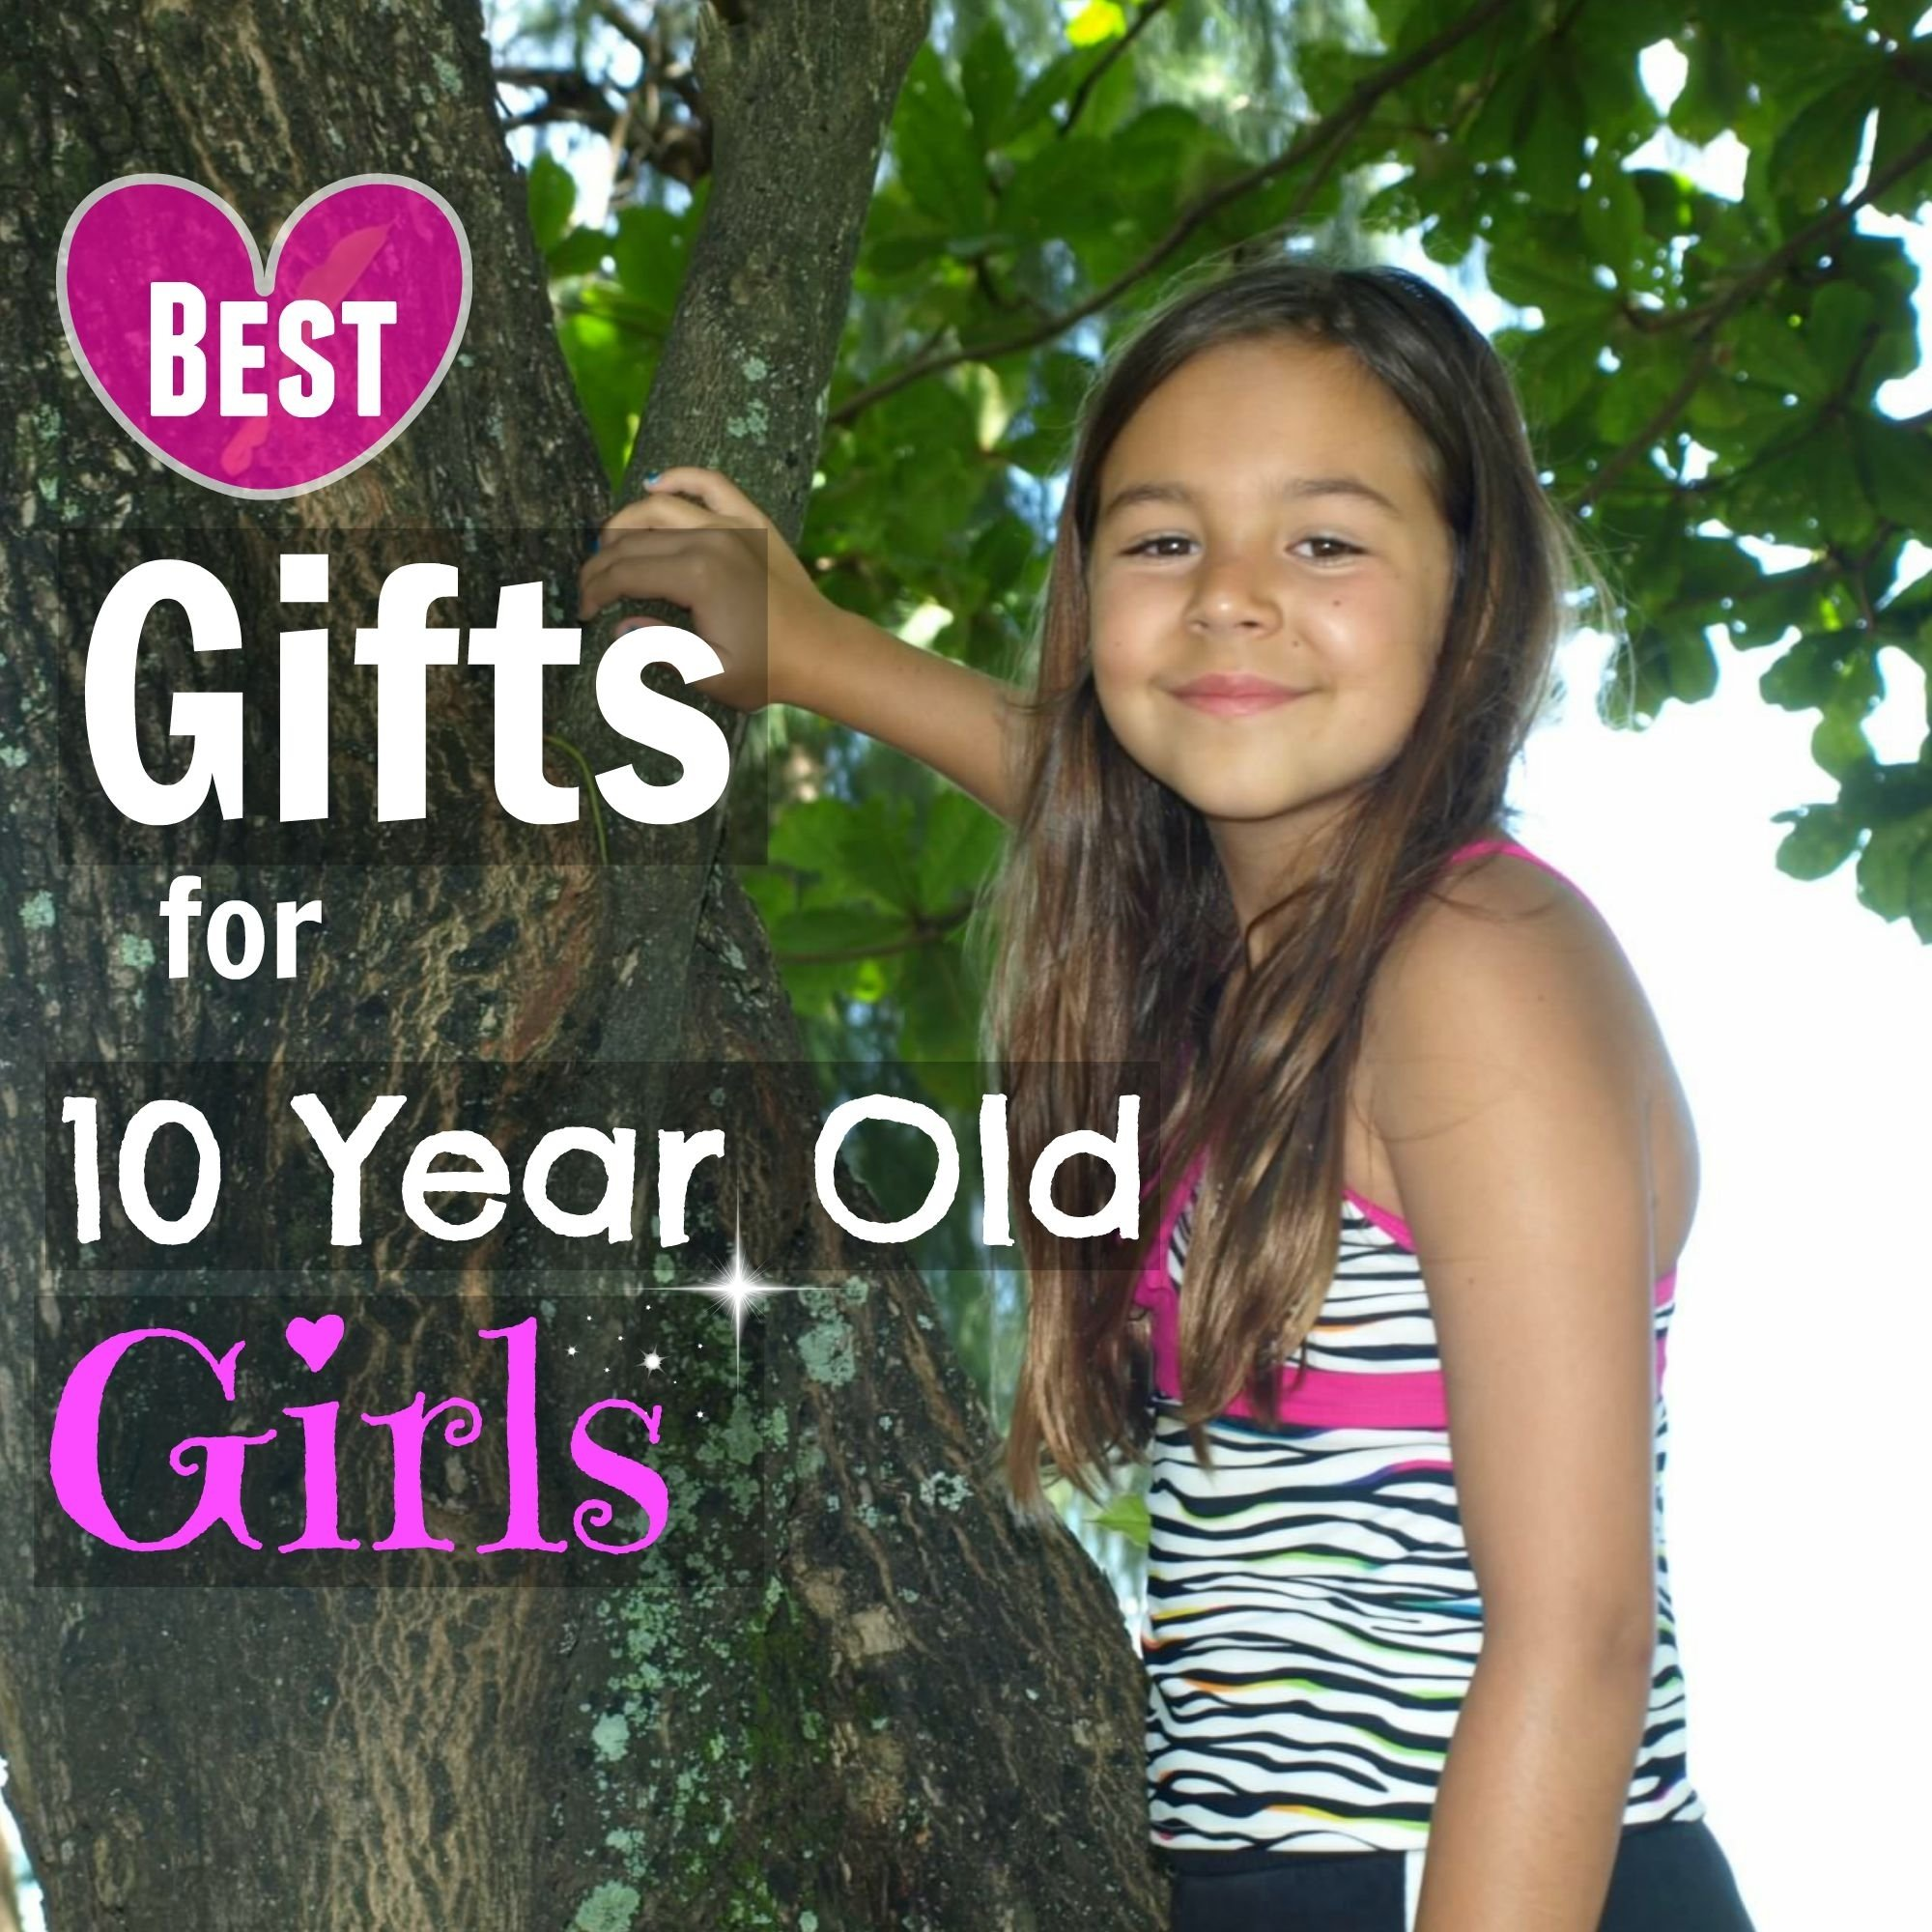 10 Attractive Birthday Gift Ideas For 10 Year Old Girl best christmas toys for 10 year old girls 2017